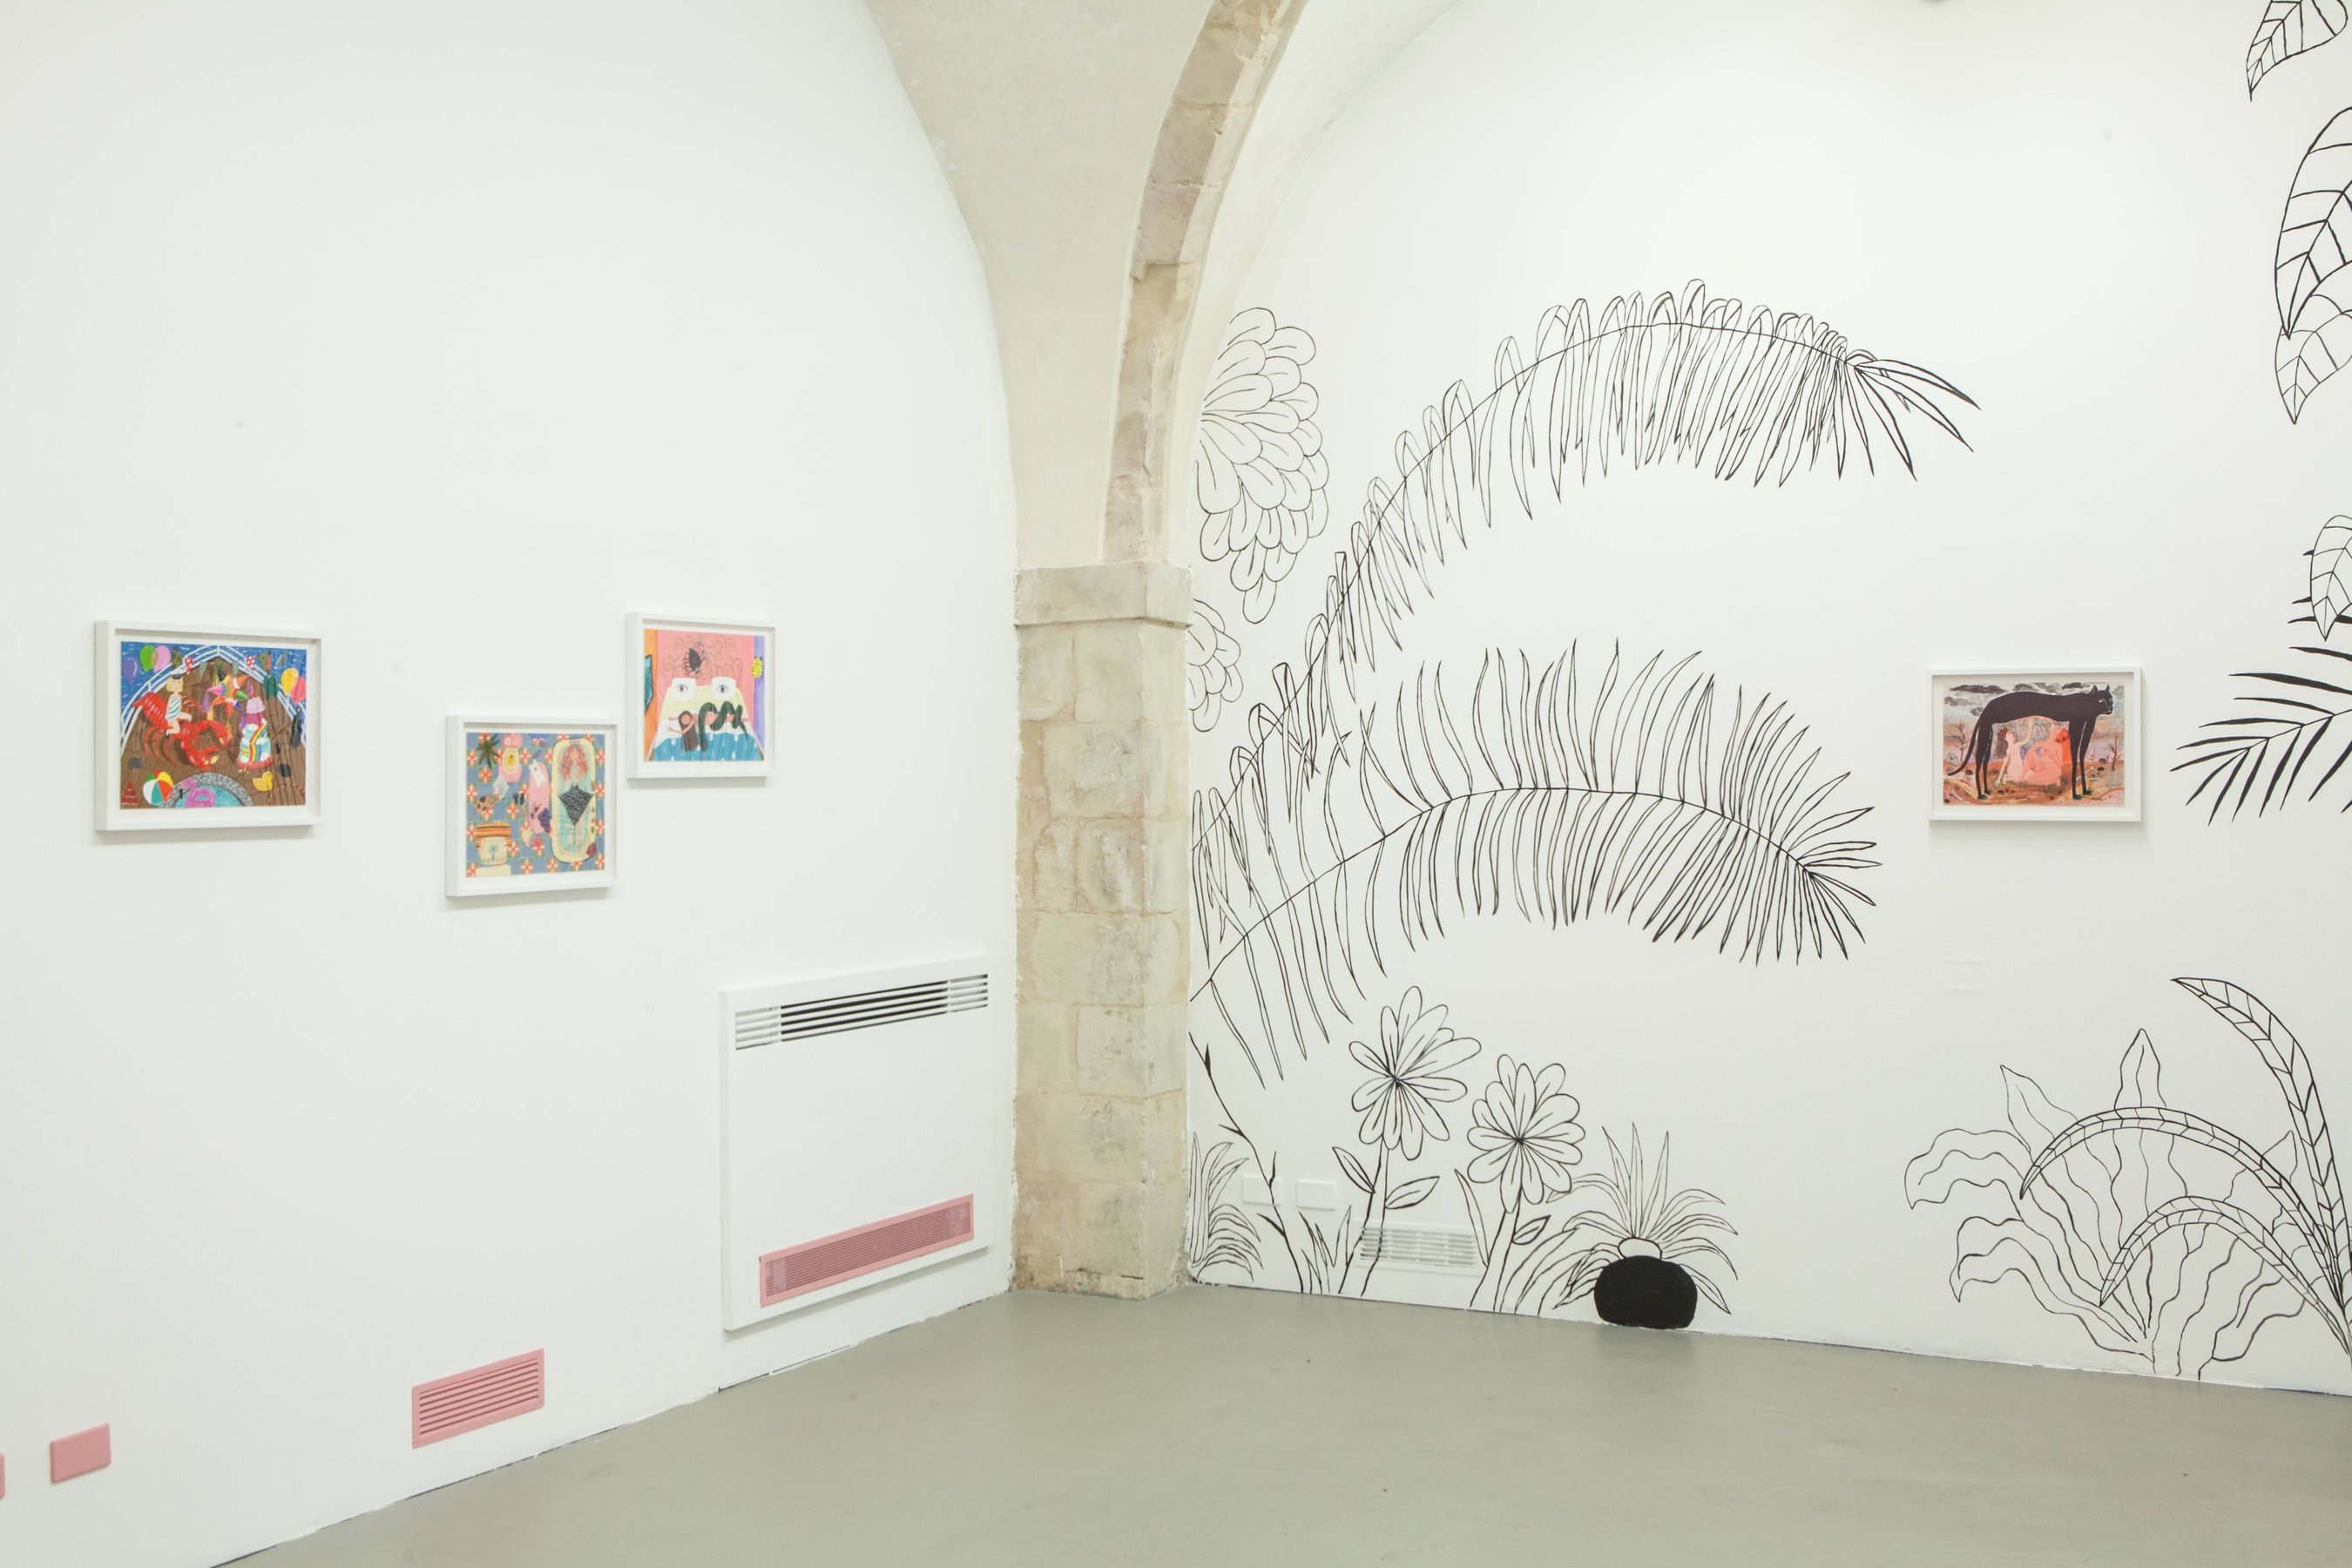 Alejandra Hernández Keep My Treasures Where I Can See Them installation view at Laveronica arte contemporanea, 2014  Ph: Francesco D'Amore